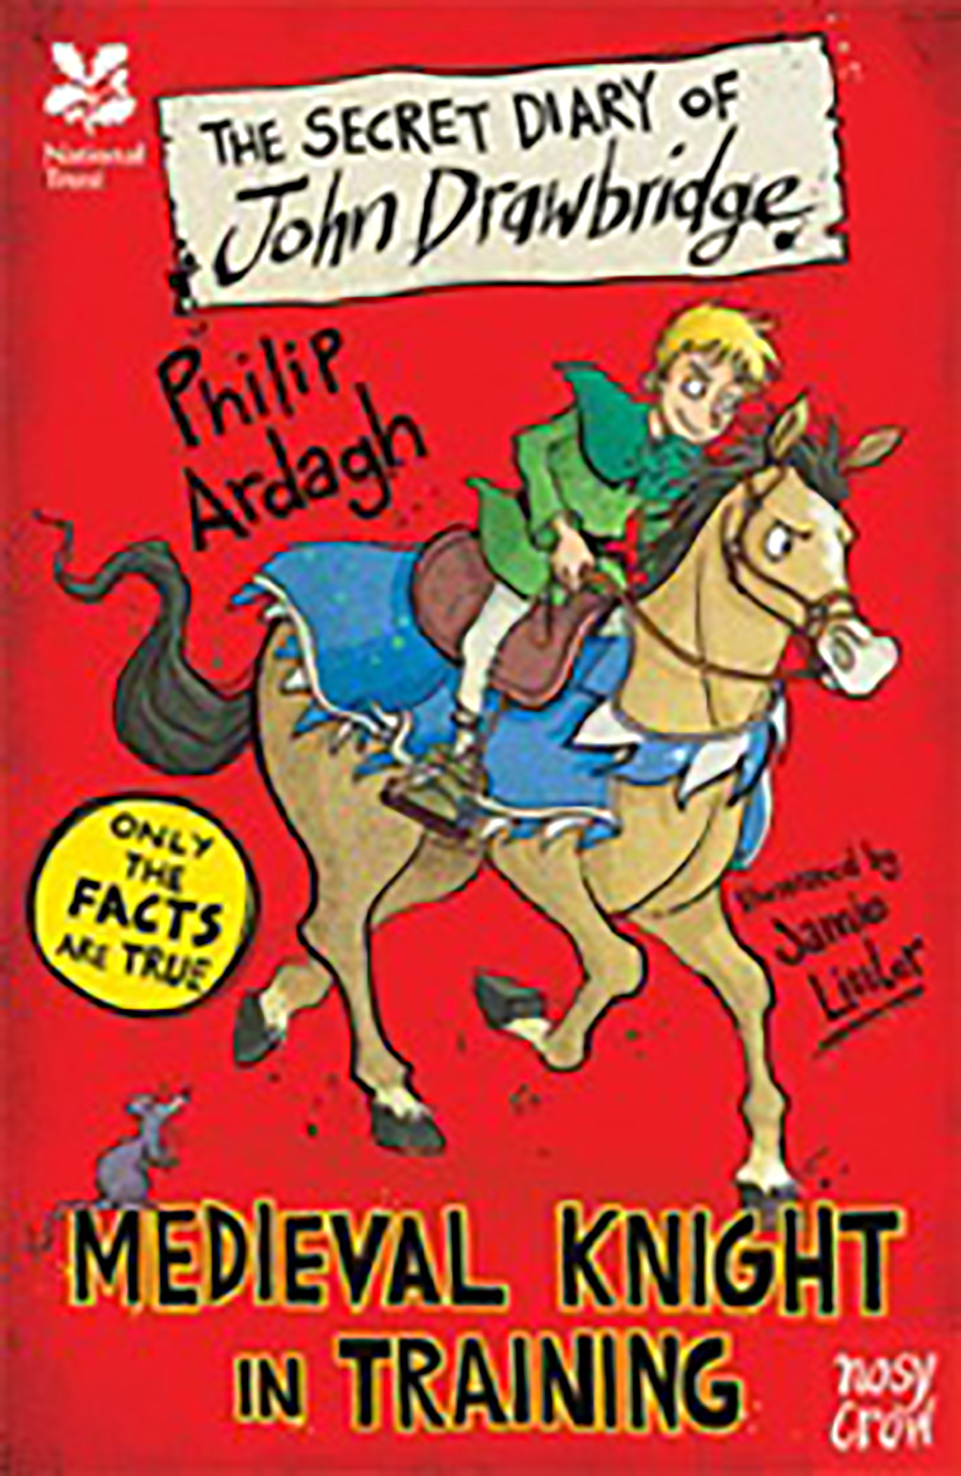 Front cover of a book: The Secret Diary of John Drawbridge by Philip Ardagh